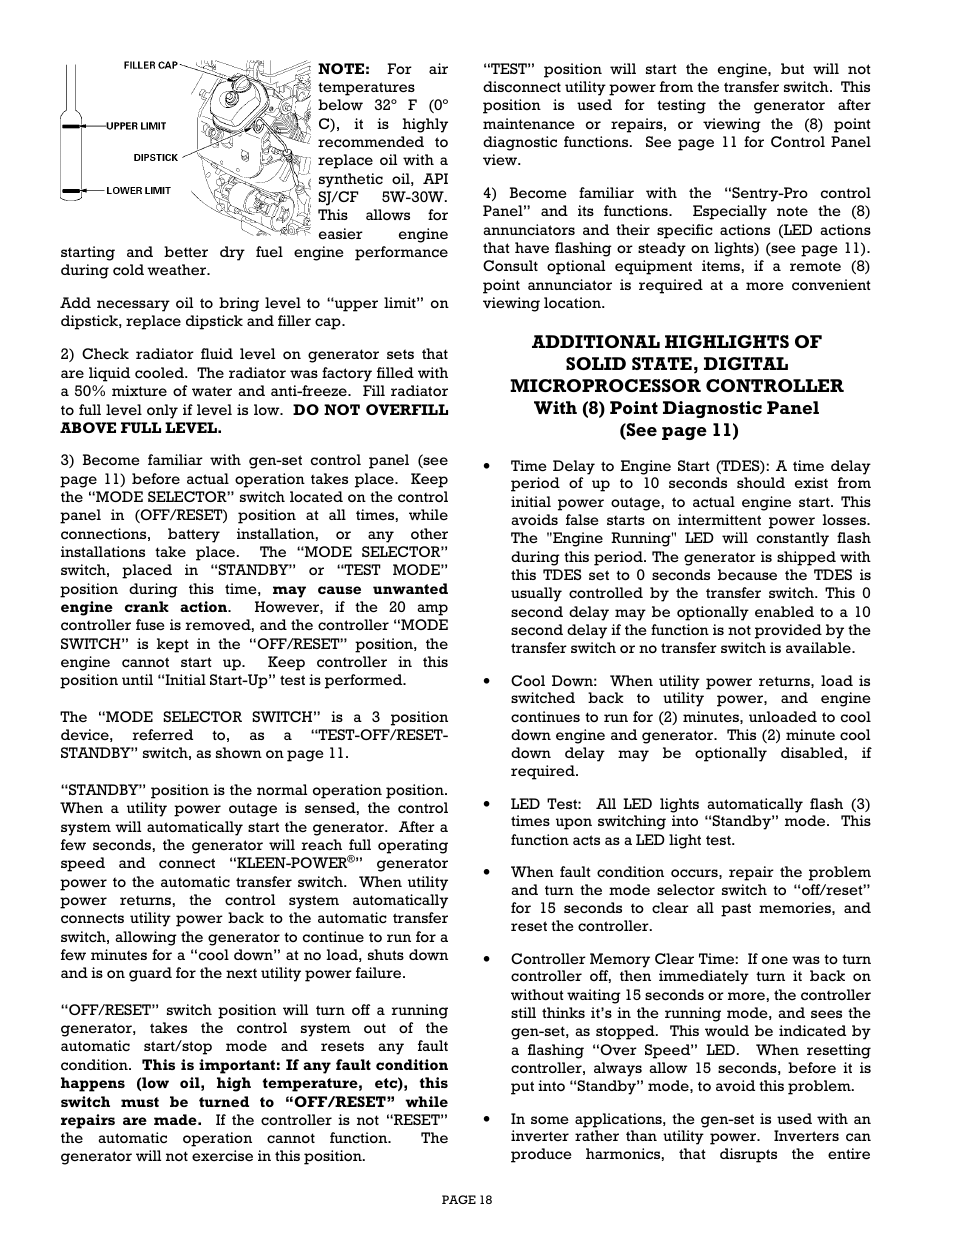 Gillette Generators SPP-180 User Manual | Page 18 / 32